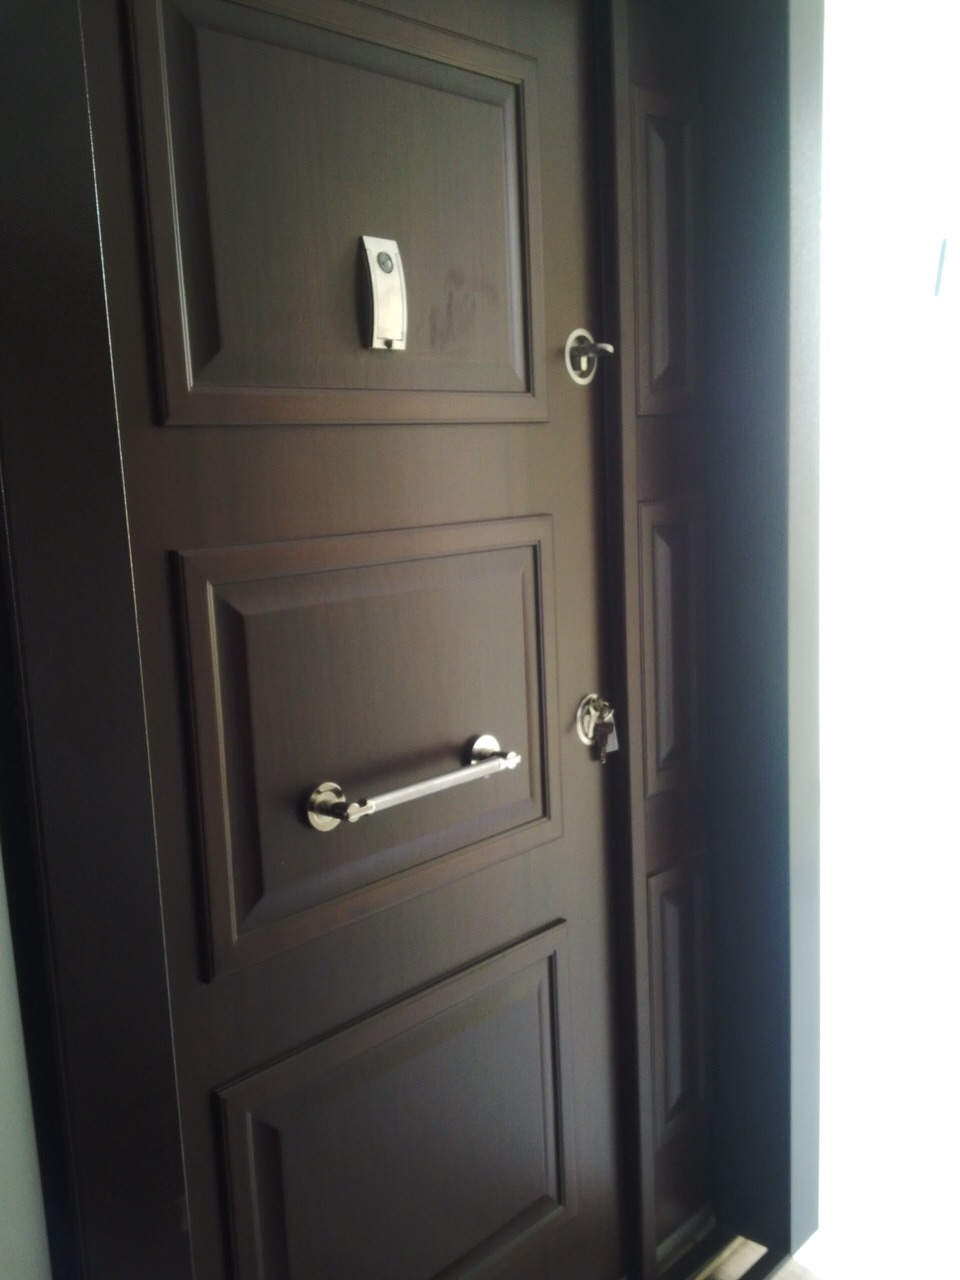 Turkey security door amour and wooden door for sales for Door design nigeria